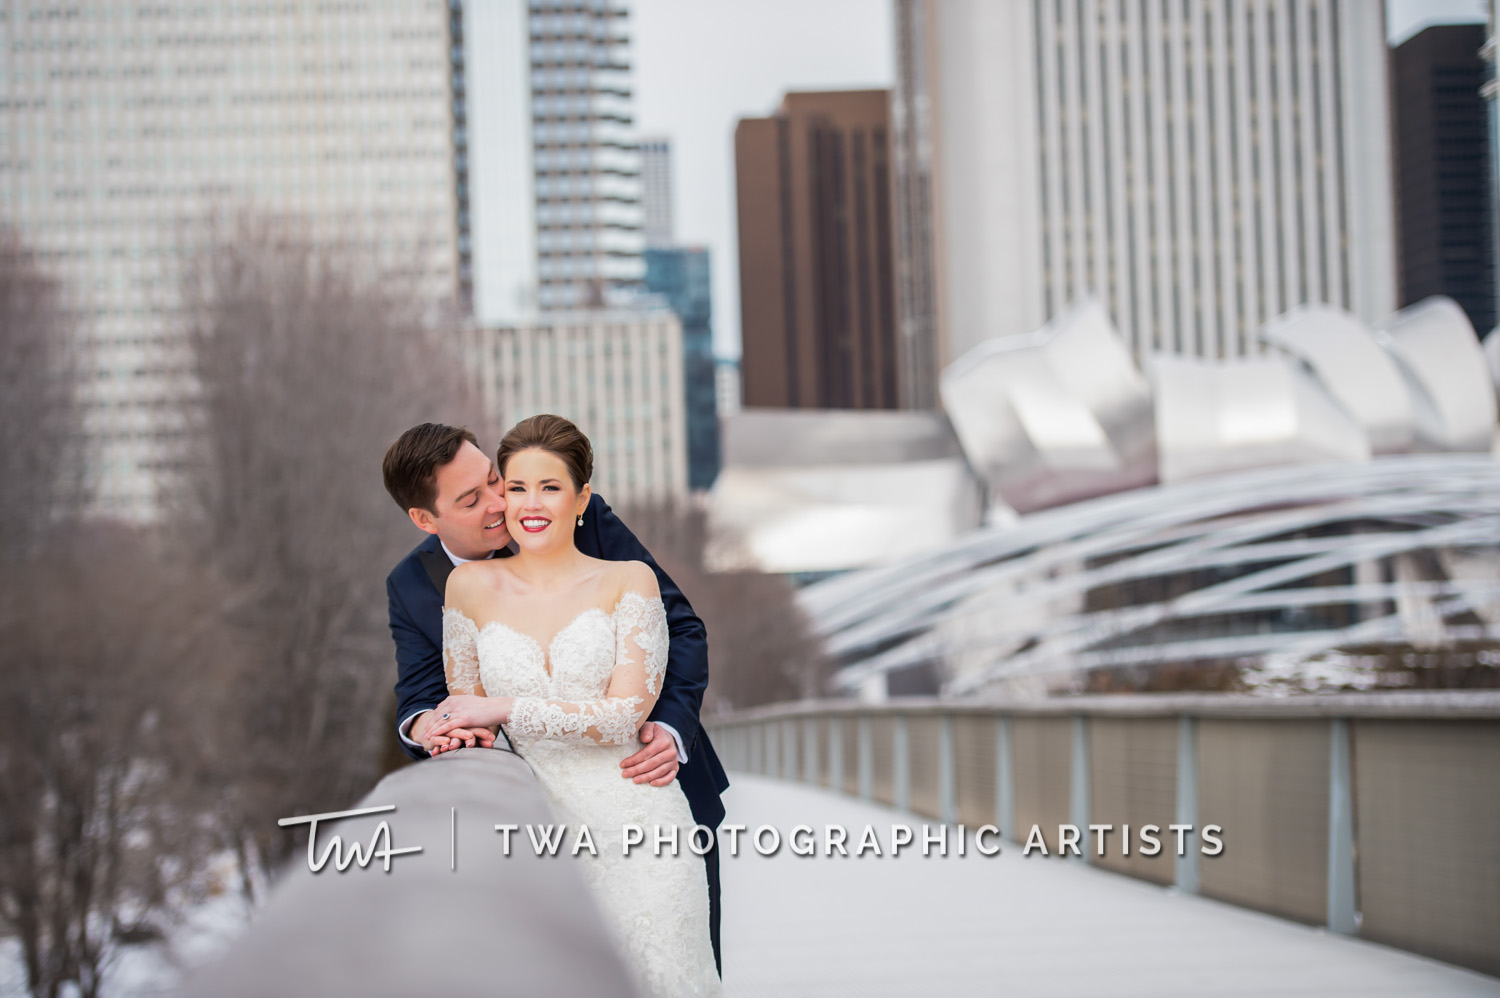 Sarah & Brandon's Chicago Wedding